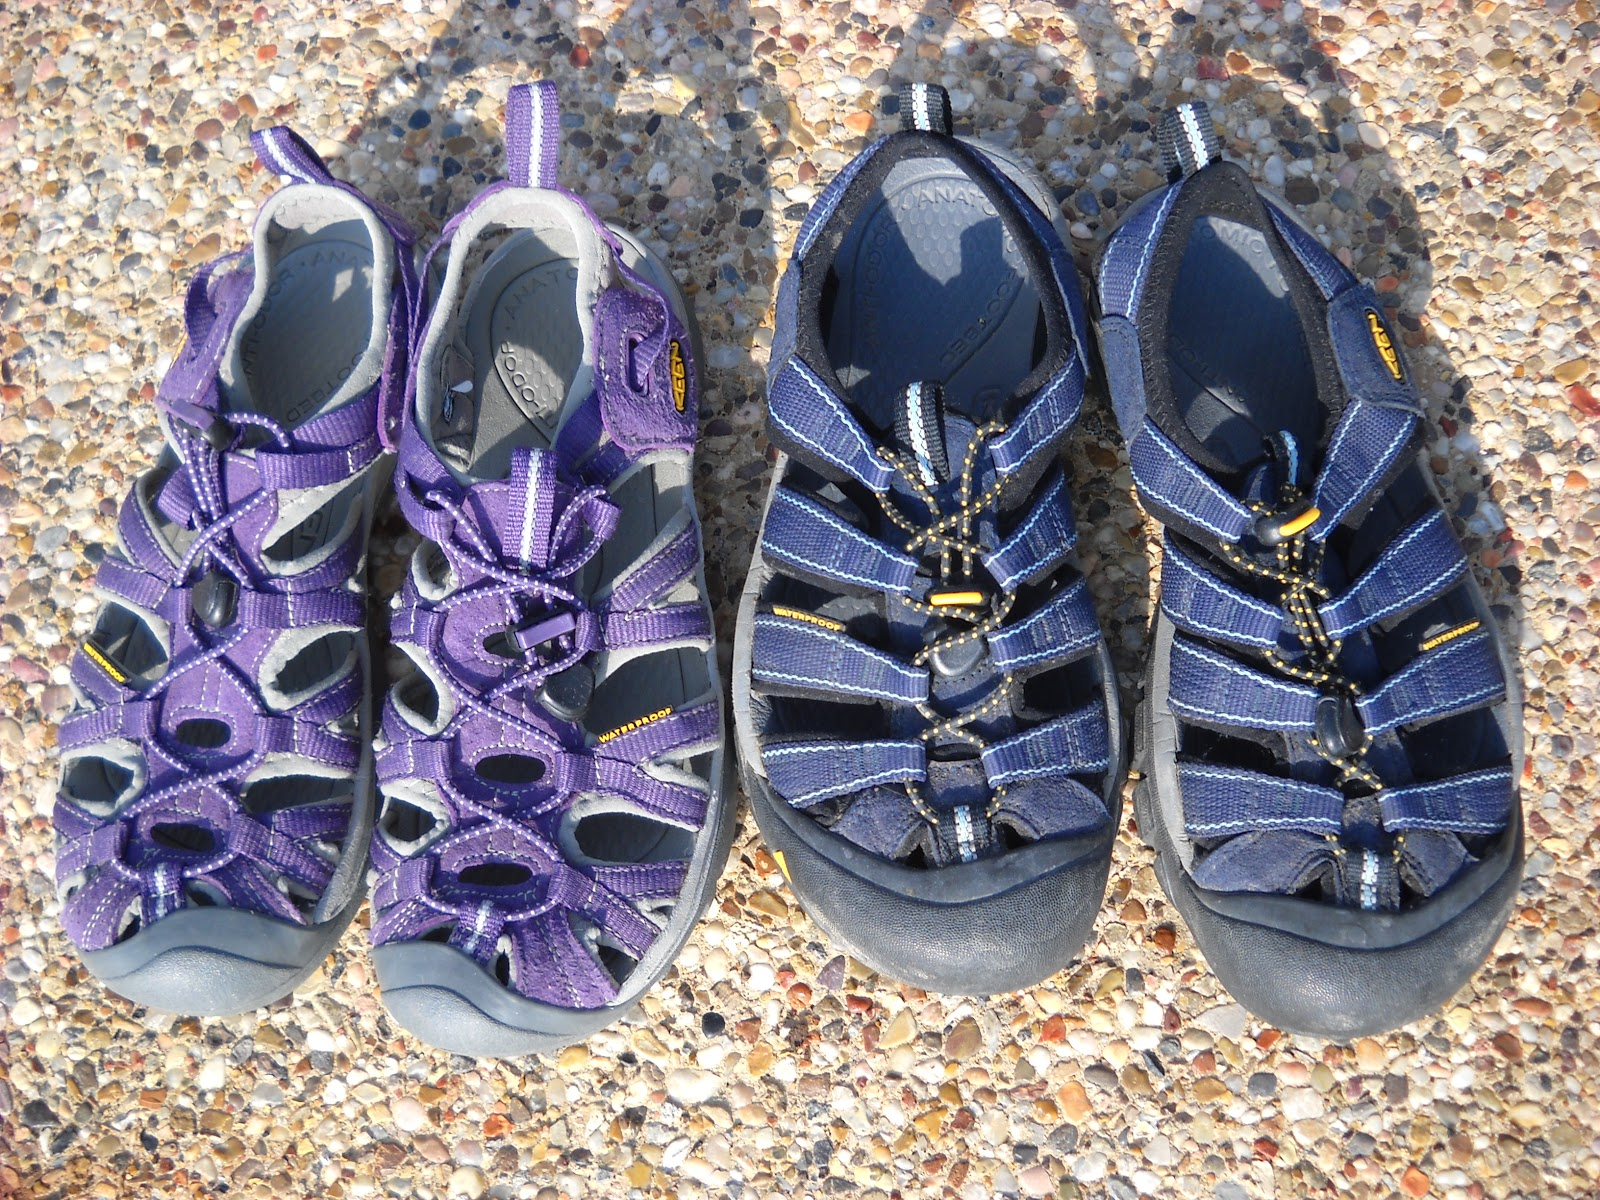 c6c4eb9b9d3 FishOn! the Fly  OBN s Gear Review  Women s Keen Sandals